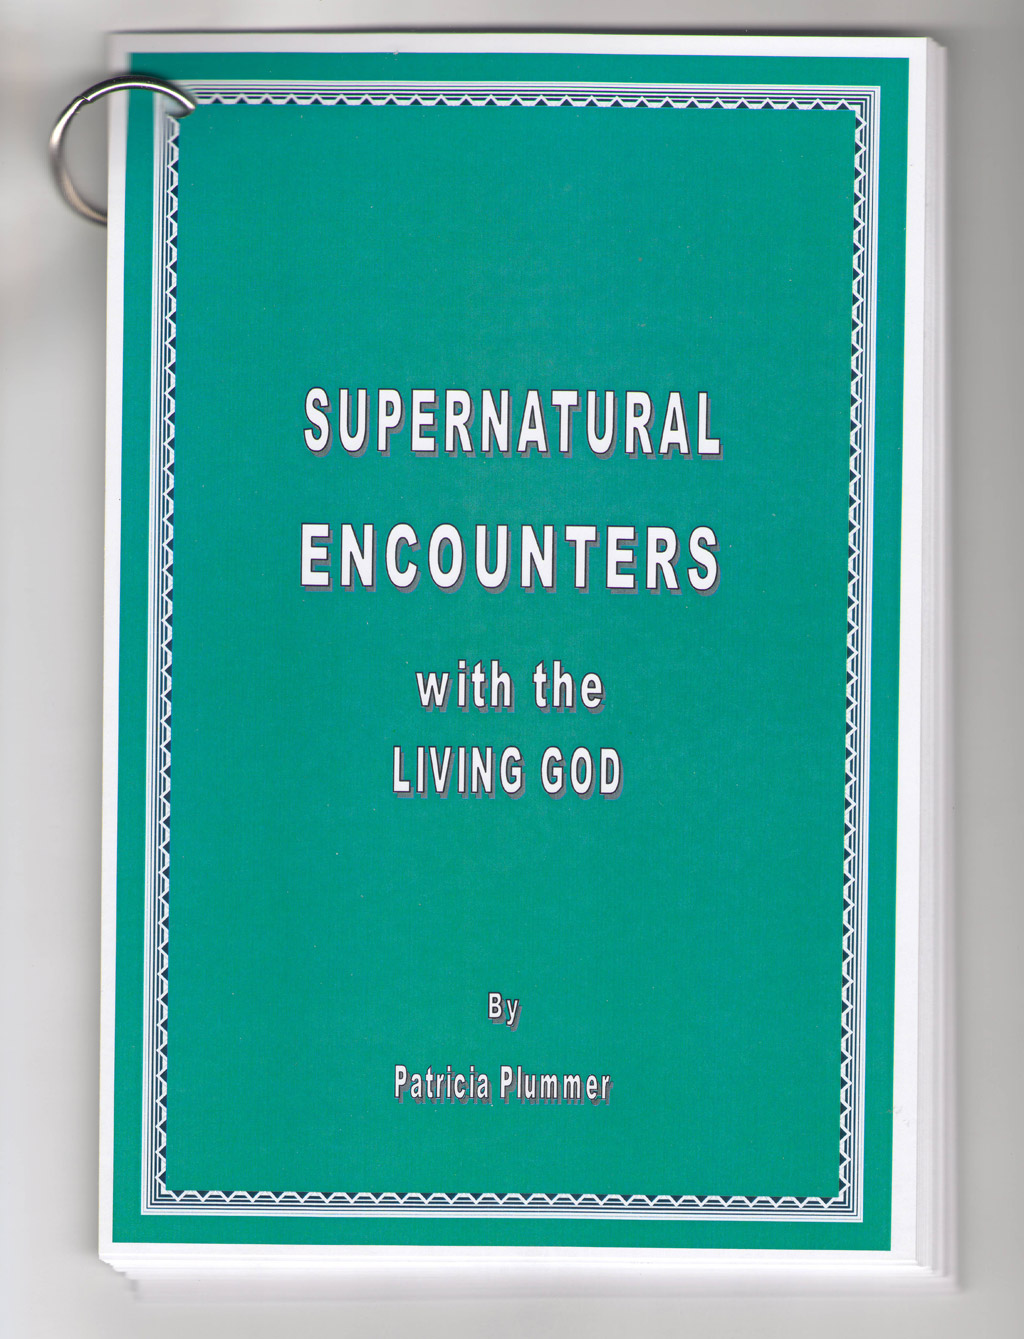 Supernatural Encounters with the Living God